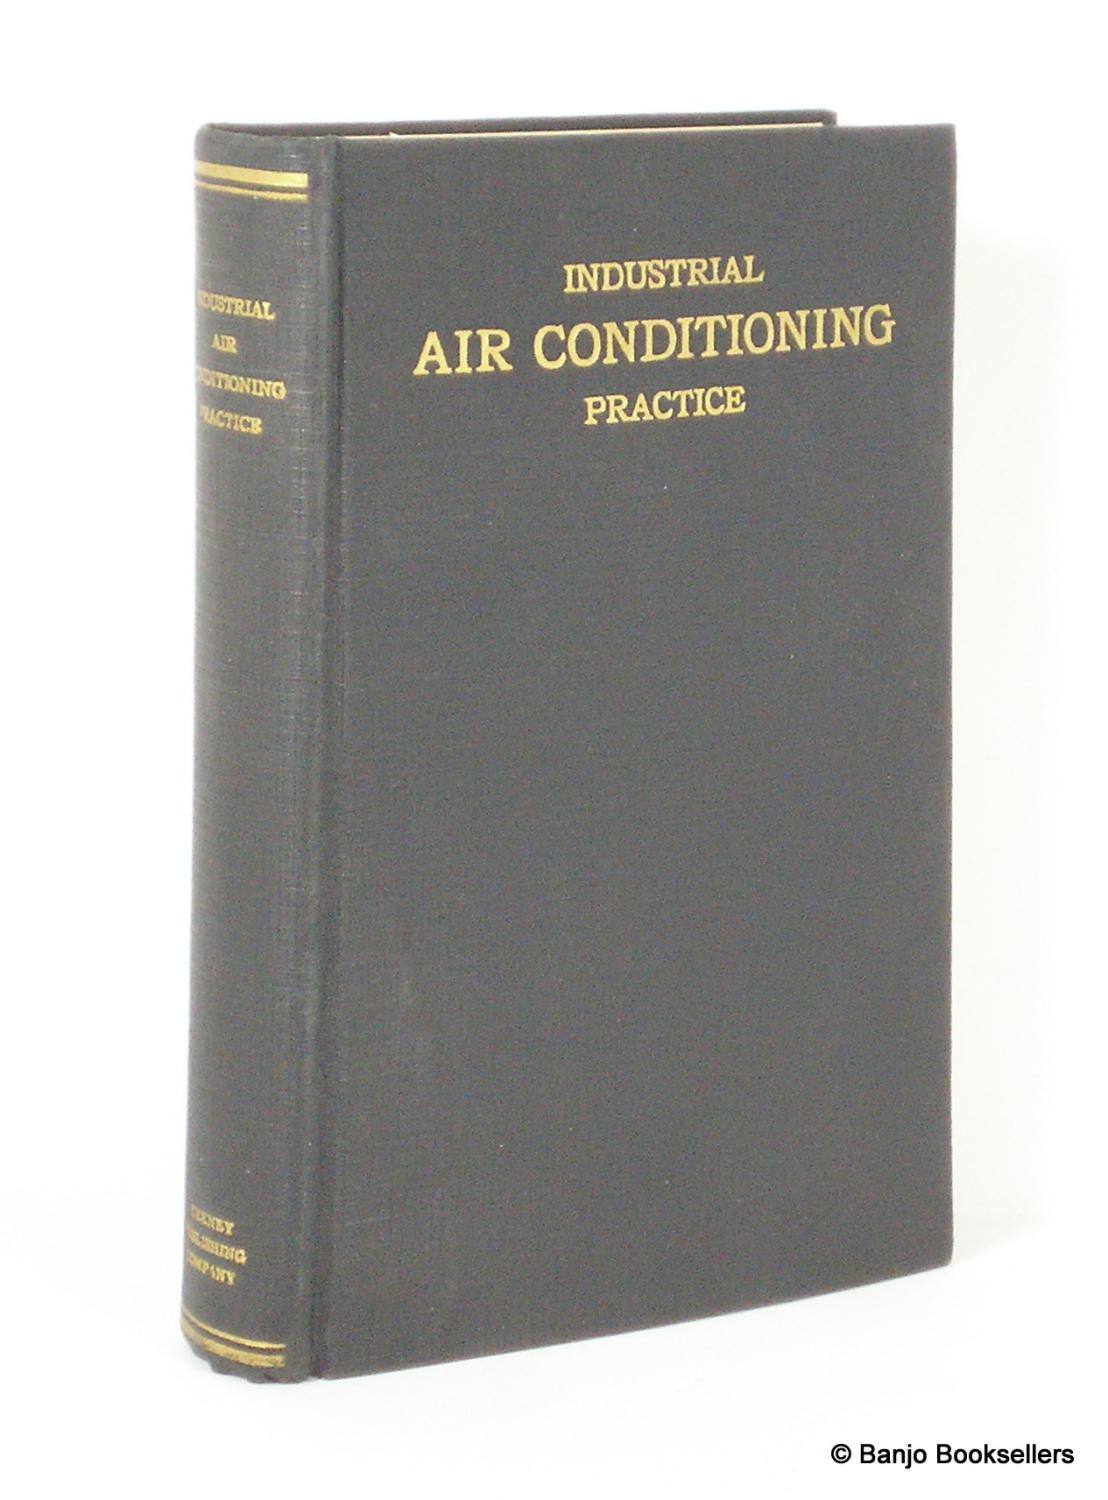 Industrial Air Conditioning Practice